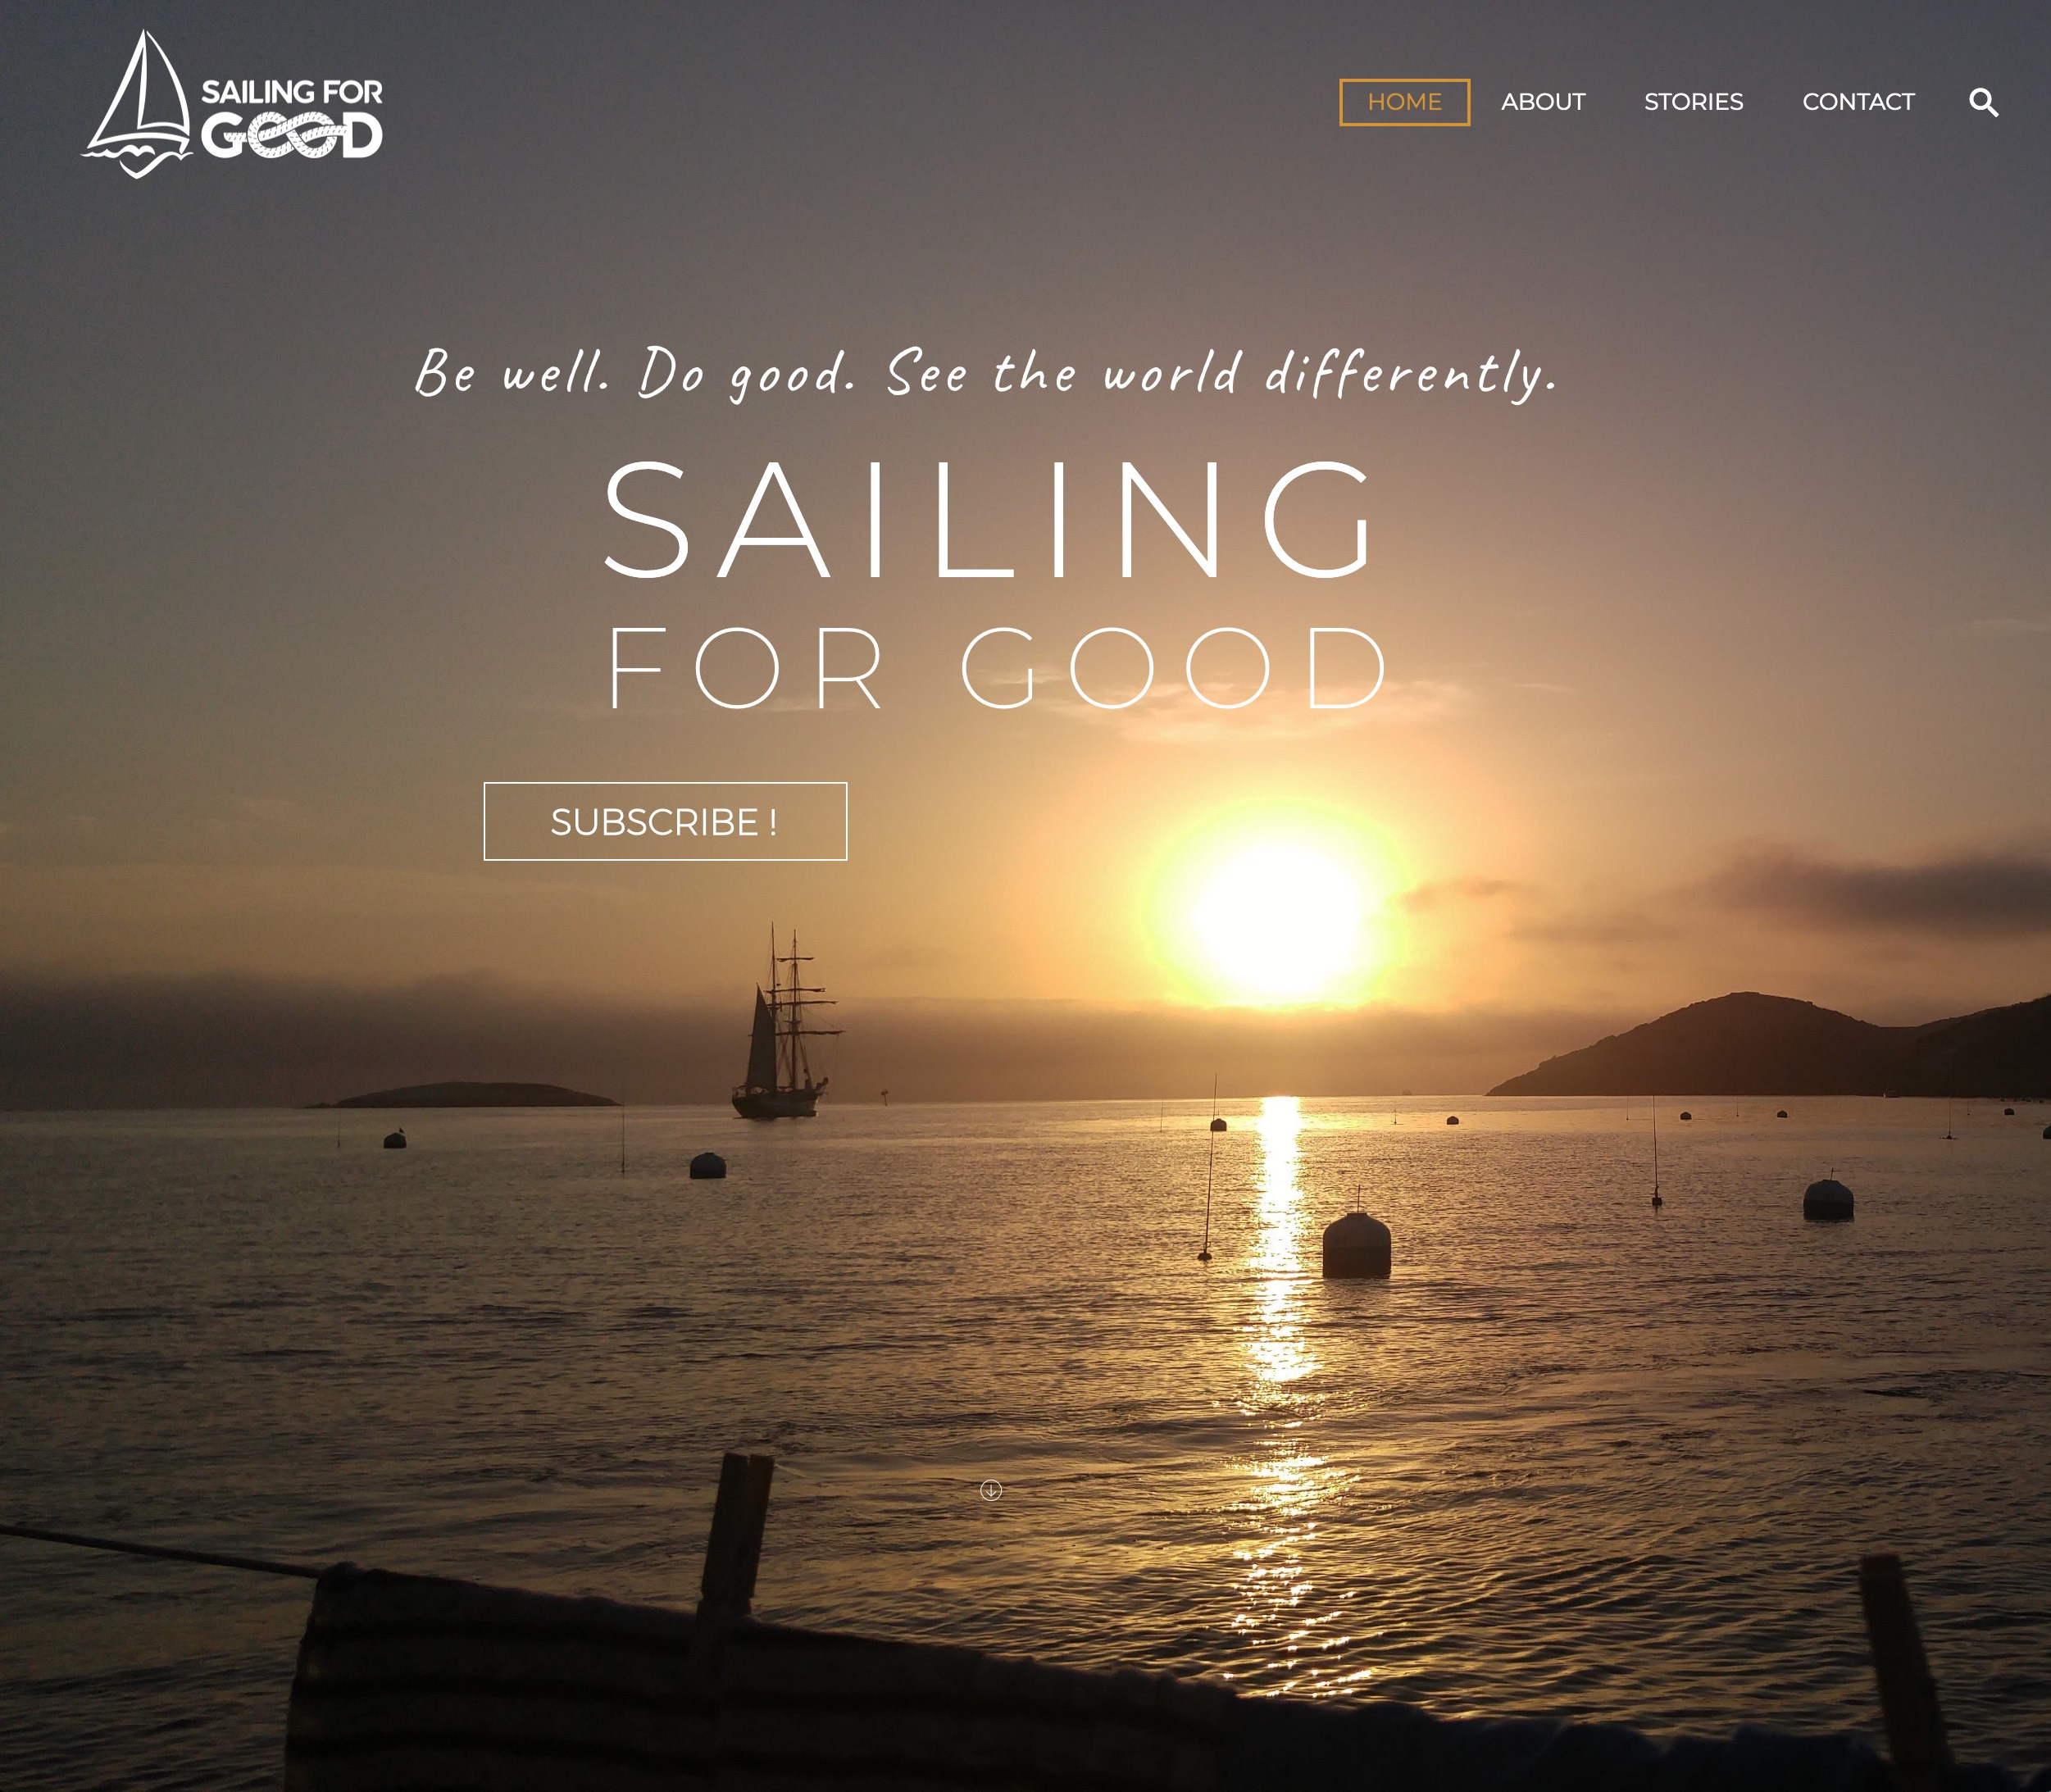 Sailing for Good, Inc.